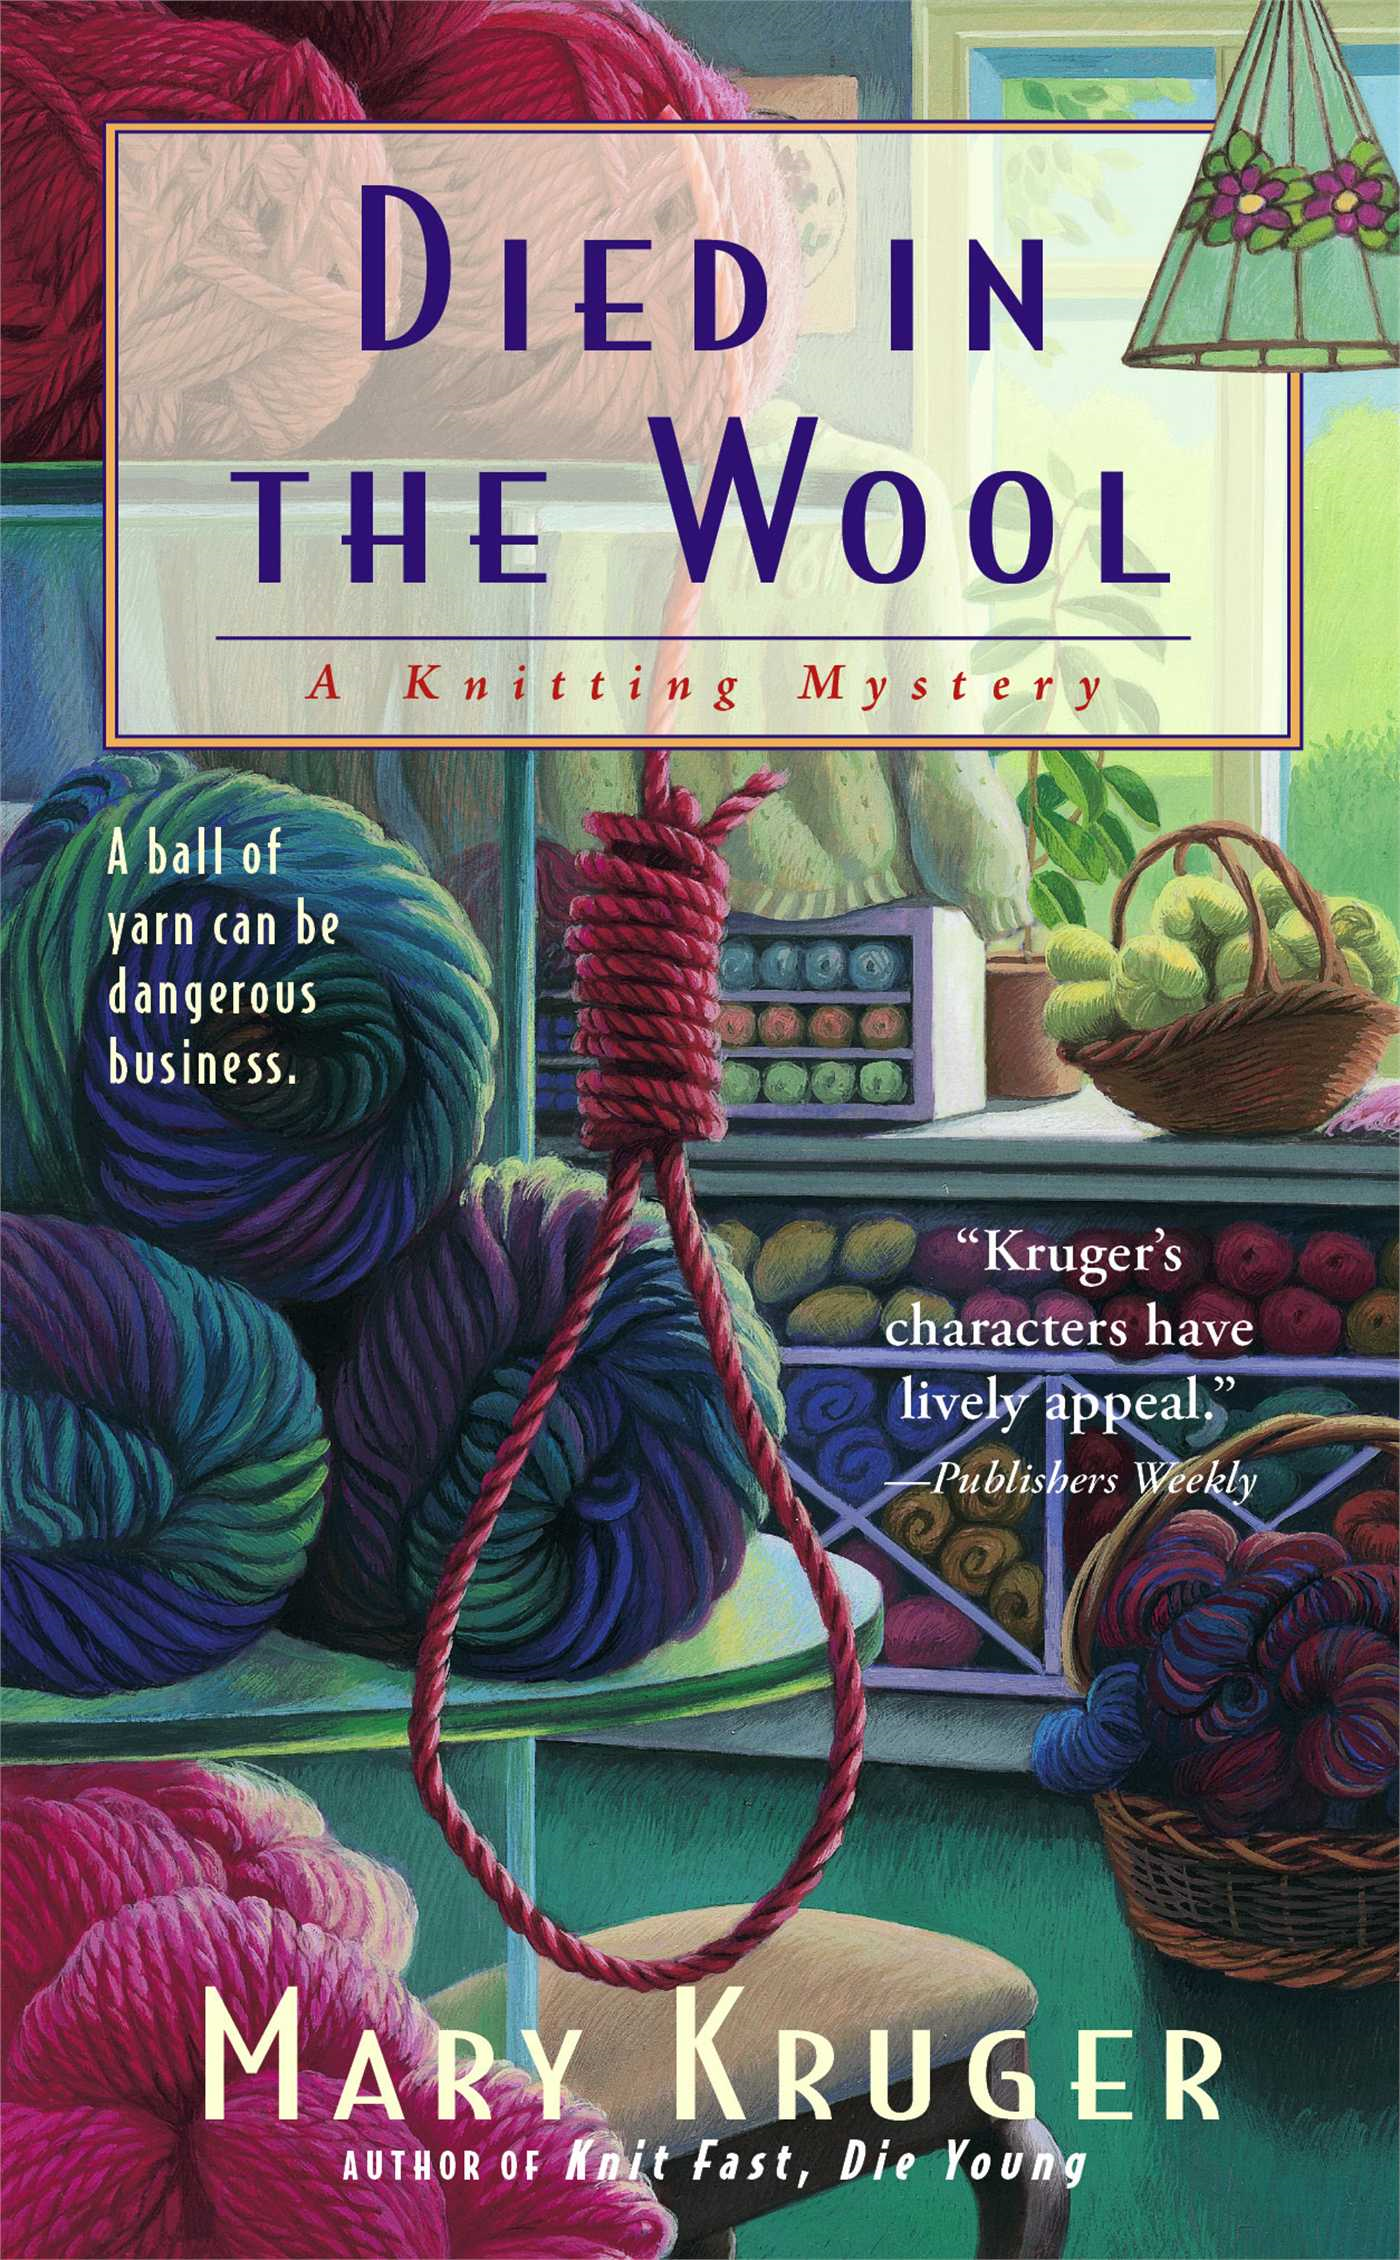 Died in the Wool A Knitting Mystery